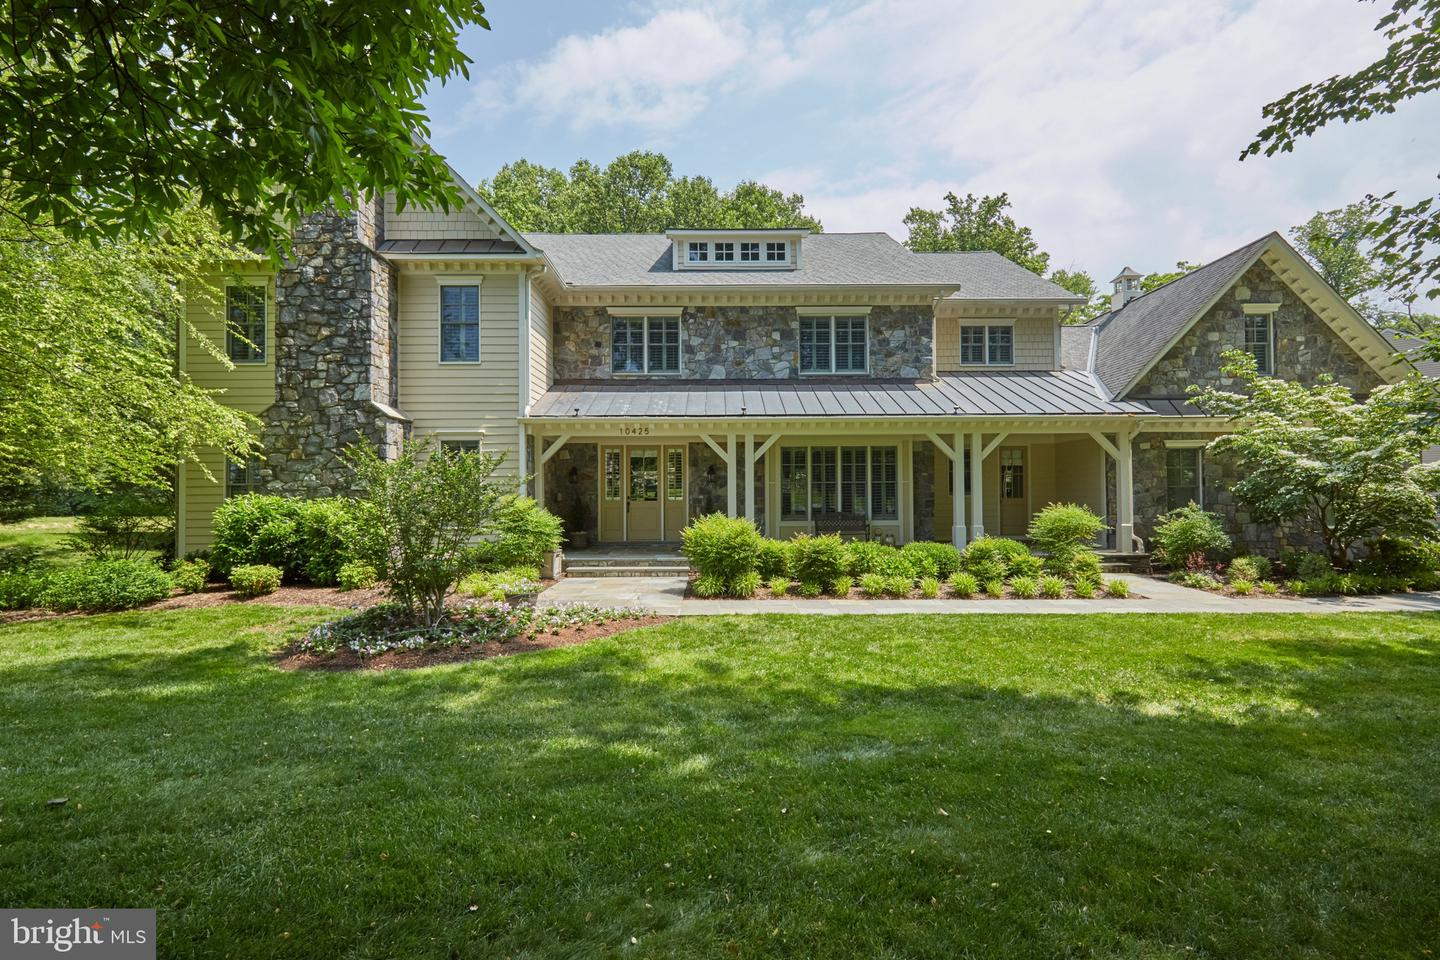 10425 BOSWELL LANE, POTOMAC, Maryland